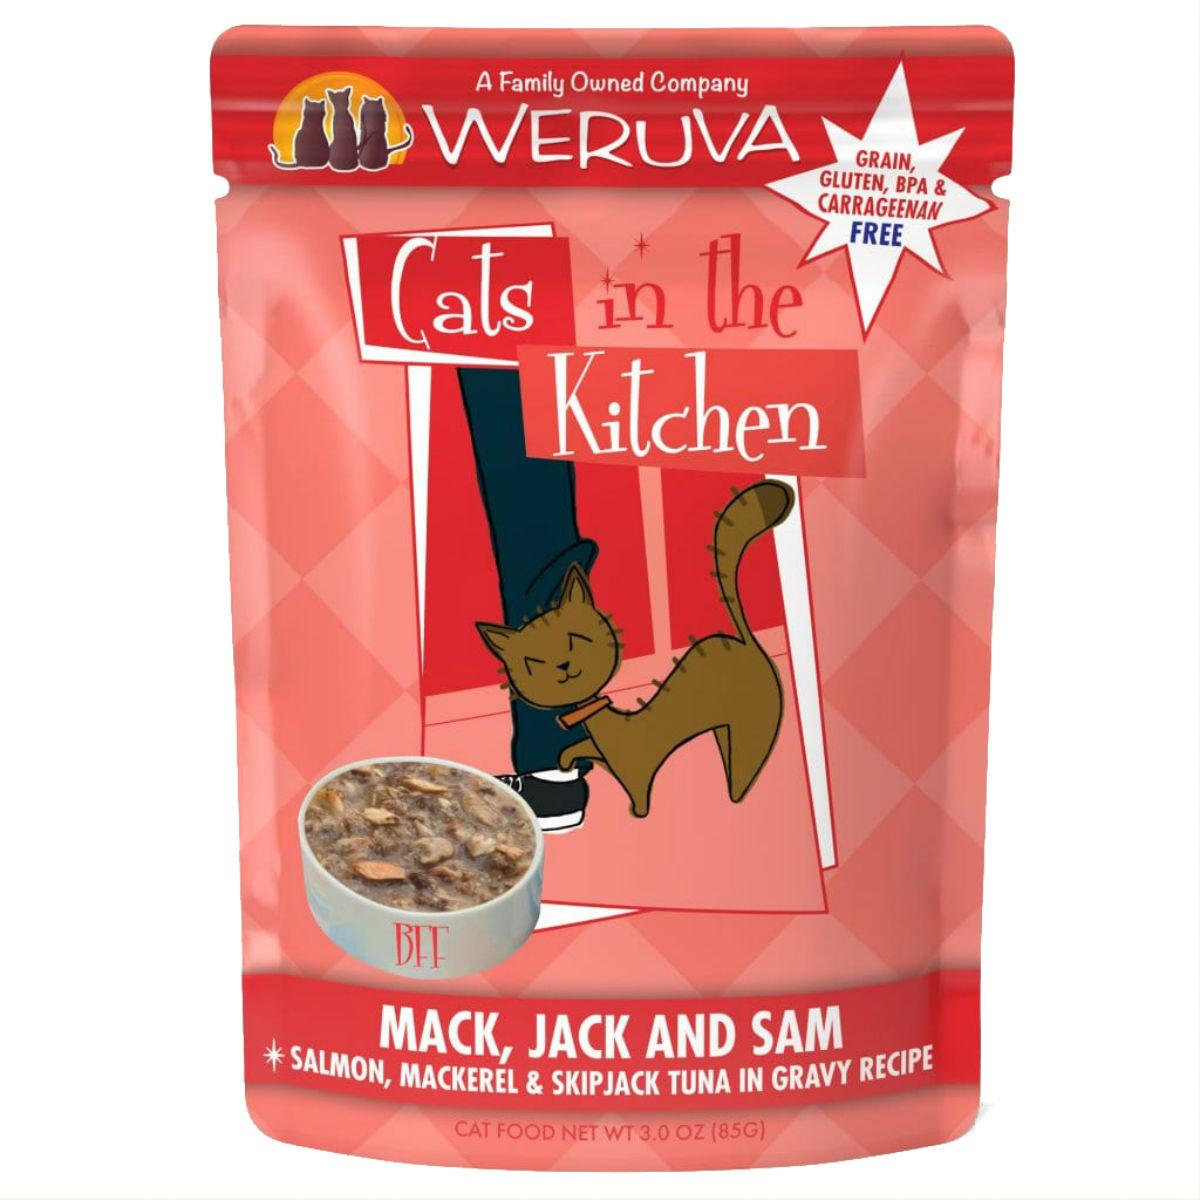 Weruva Cats in The Kitchen Cat Food Pouch - Mack, Jack and Sam